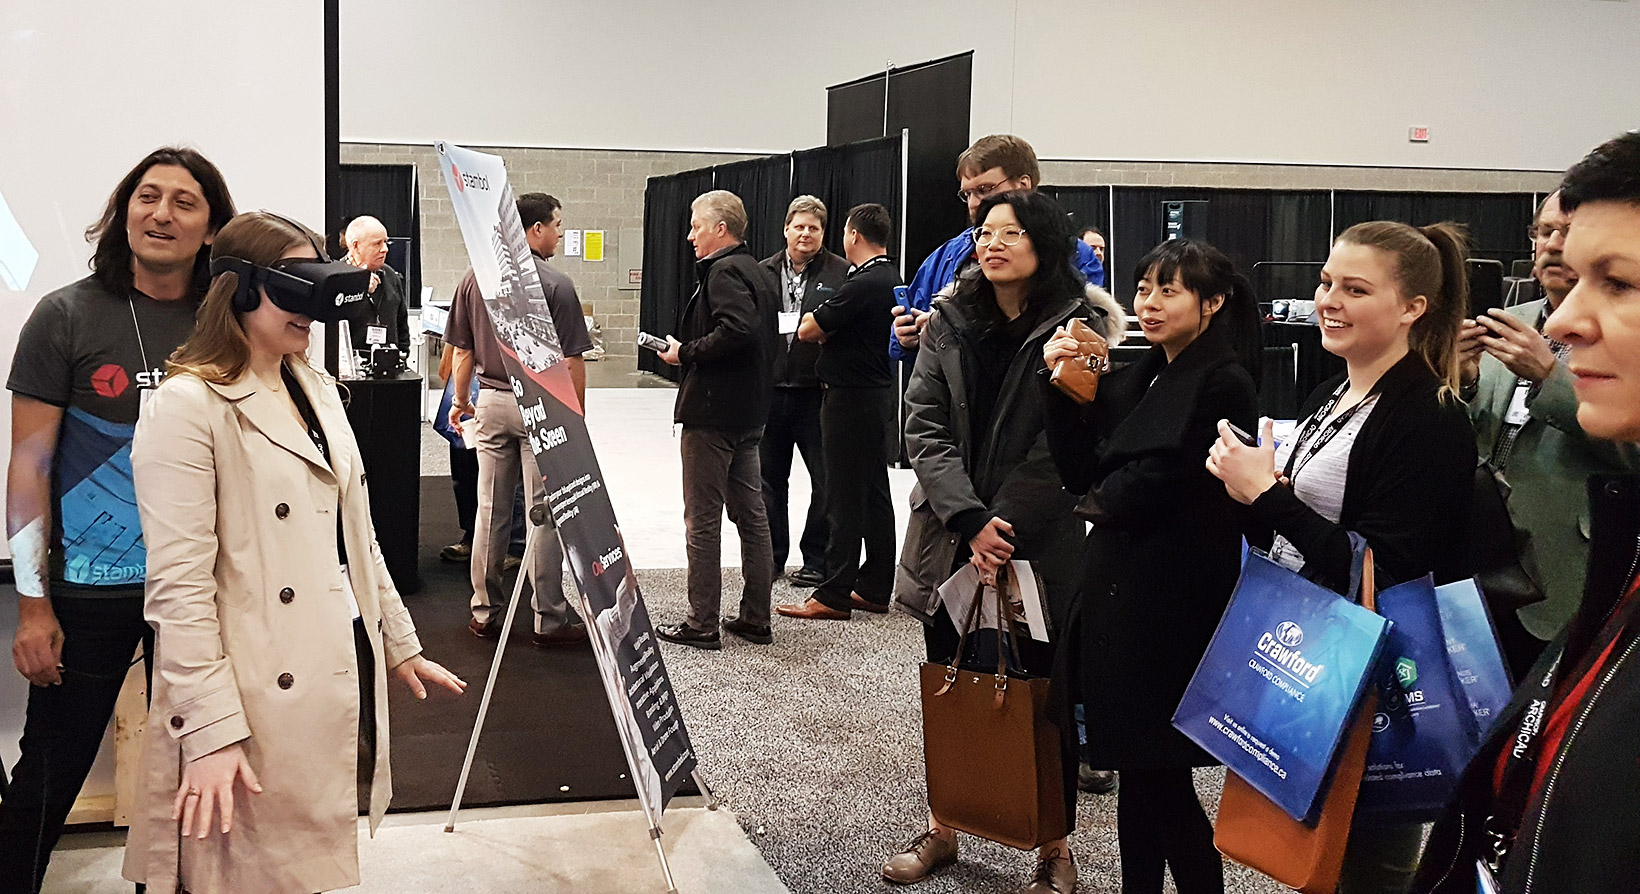 Crowd at Stambol Studios Booth at BuildEx Vancouver 2018